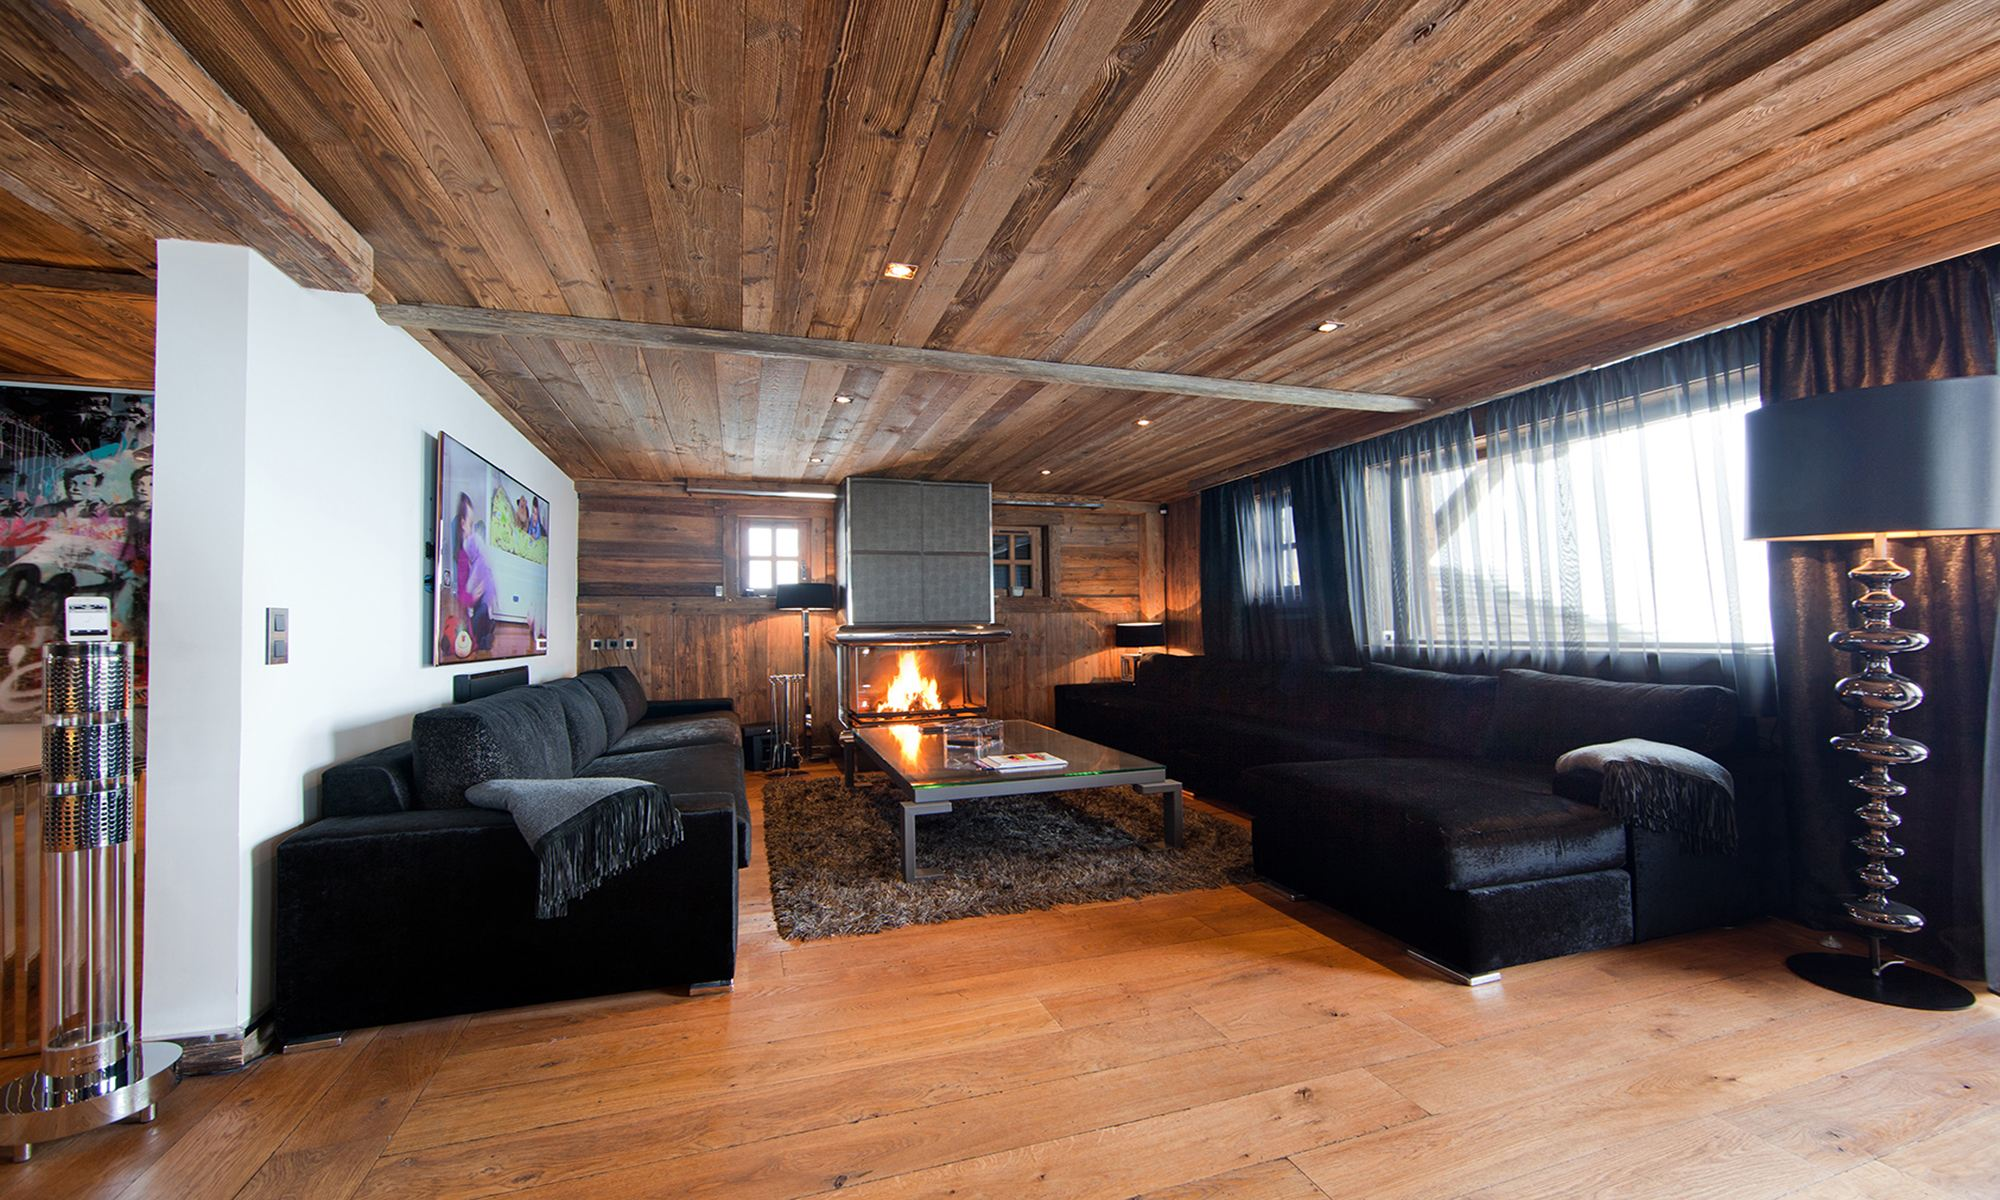 Single Family Home for Sale at Megève Jaillet Luxury Chalet Tigre Blanc Megeve, Rhone-Alpes 74120 France